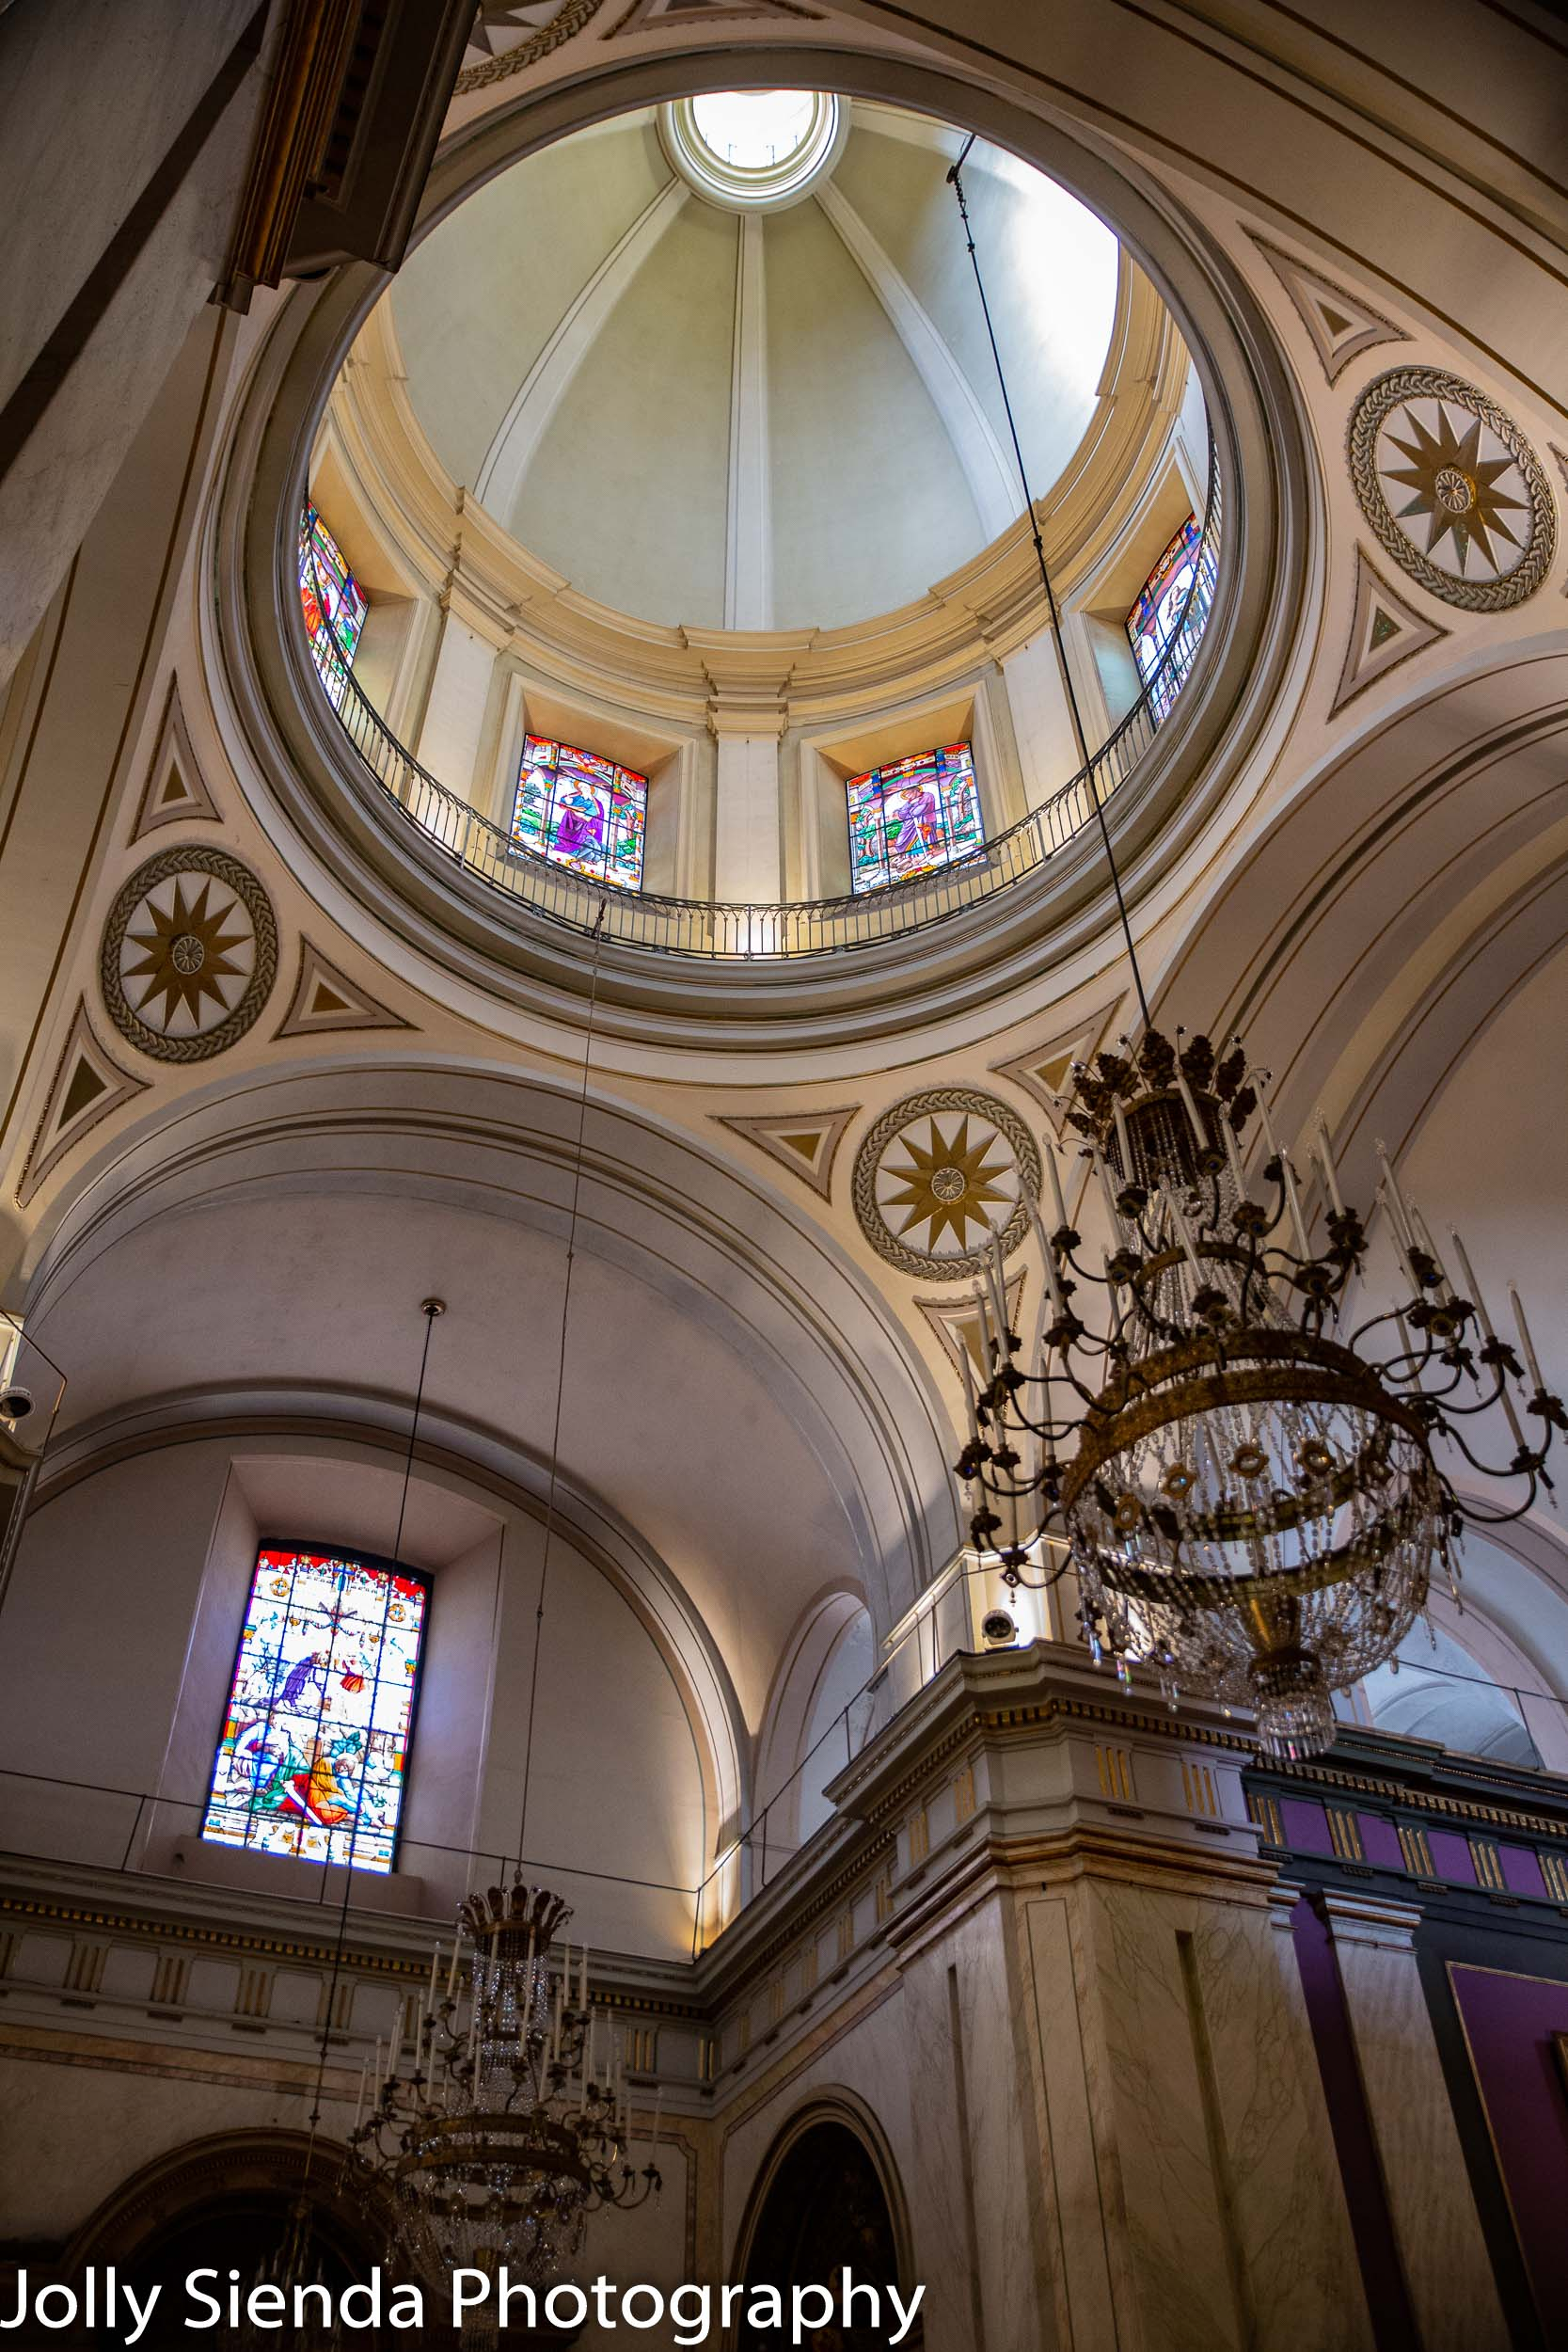 Spanish catholic church dome and stained glass windows